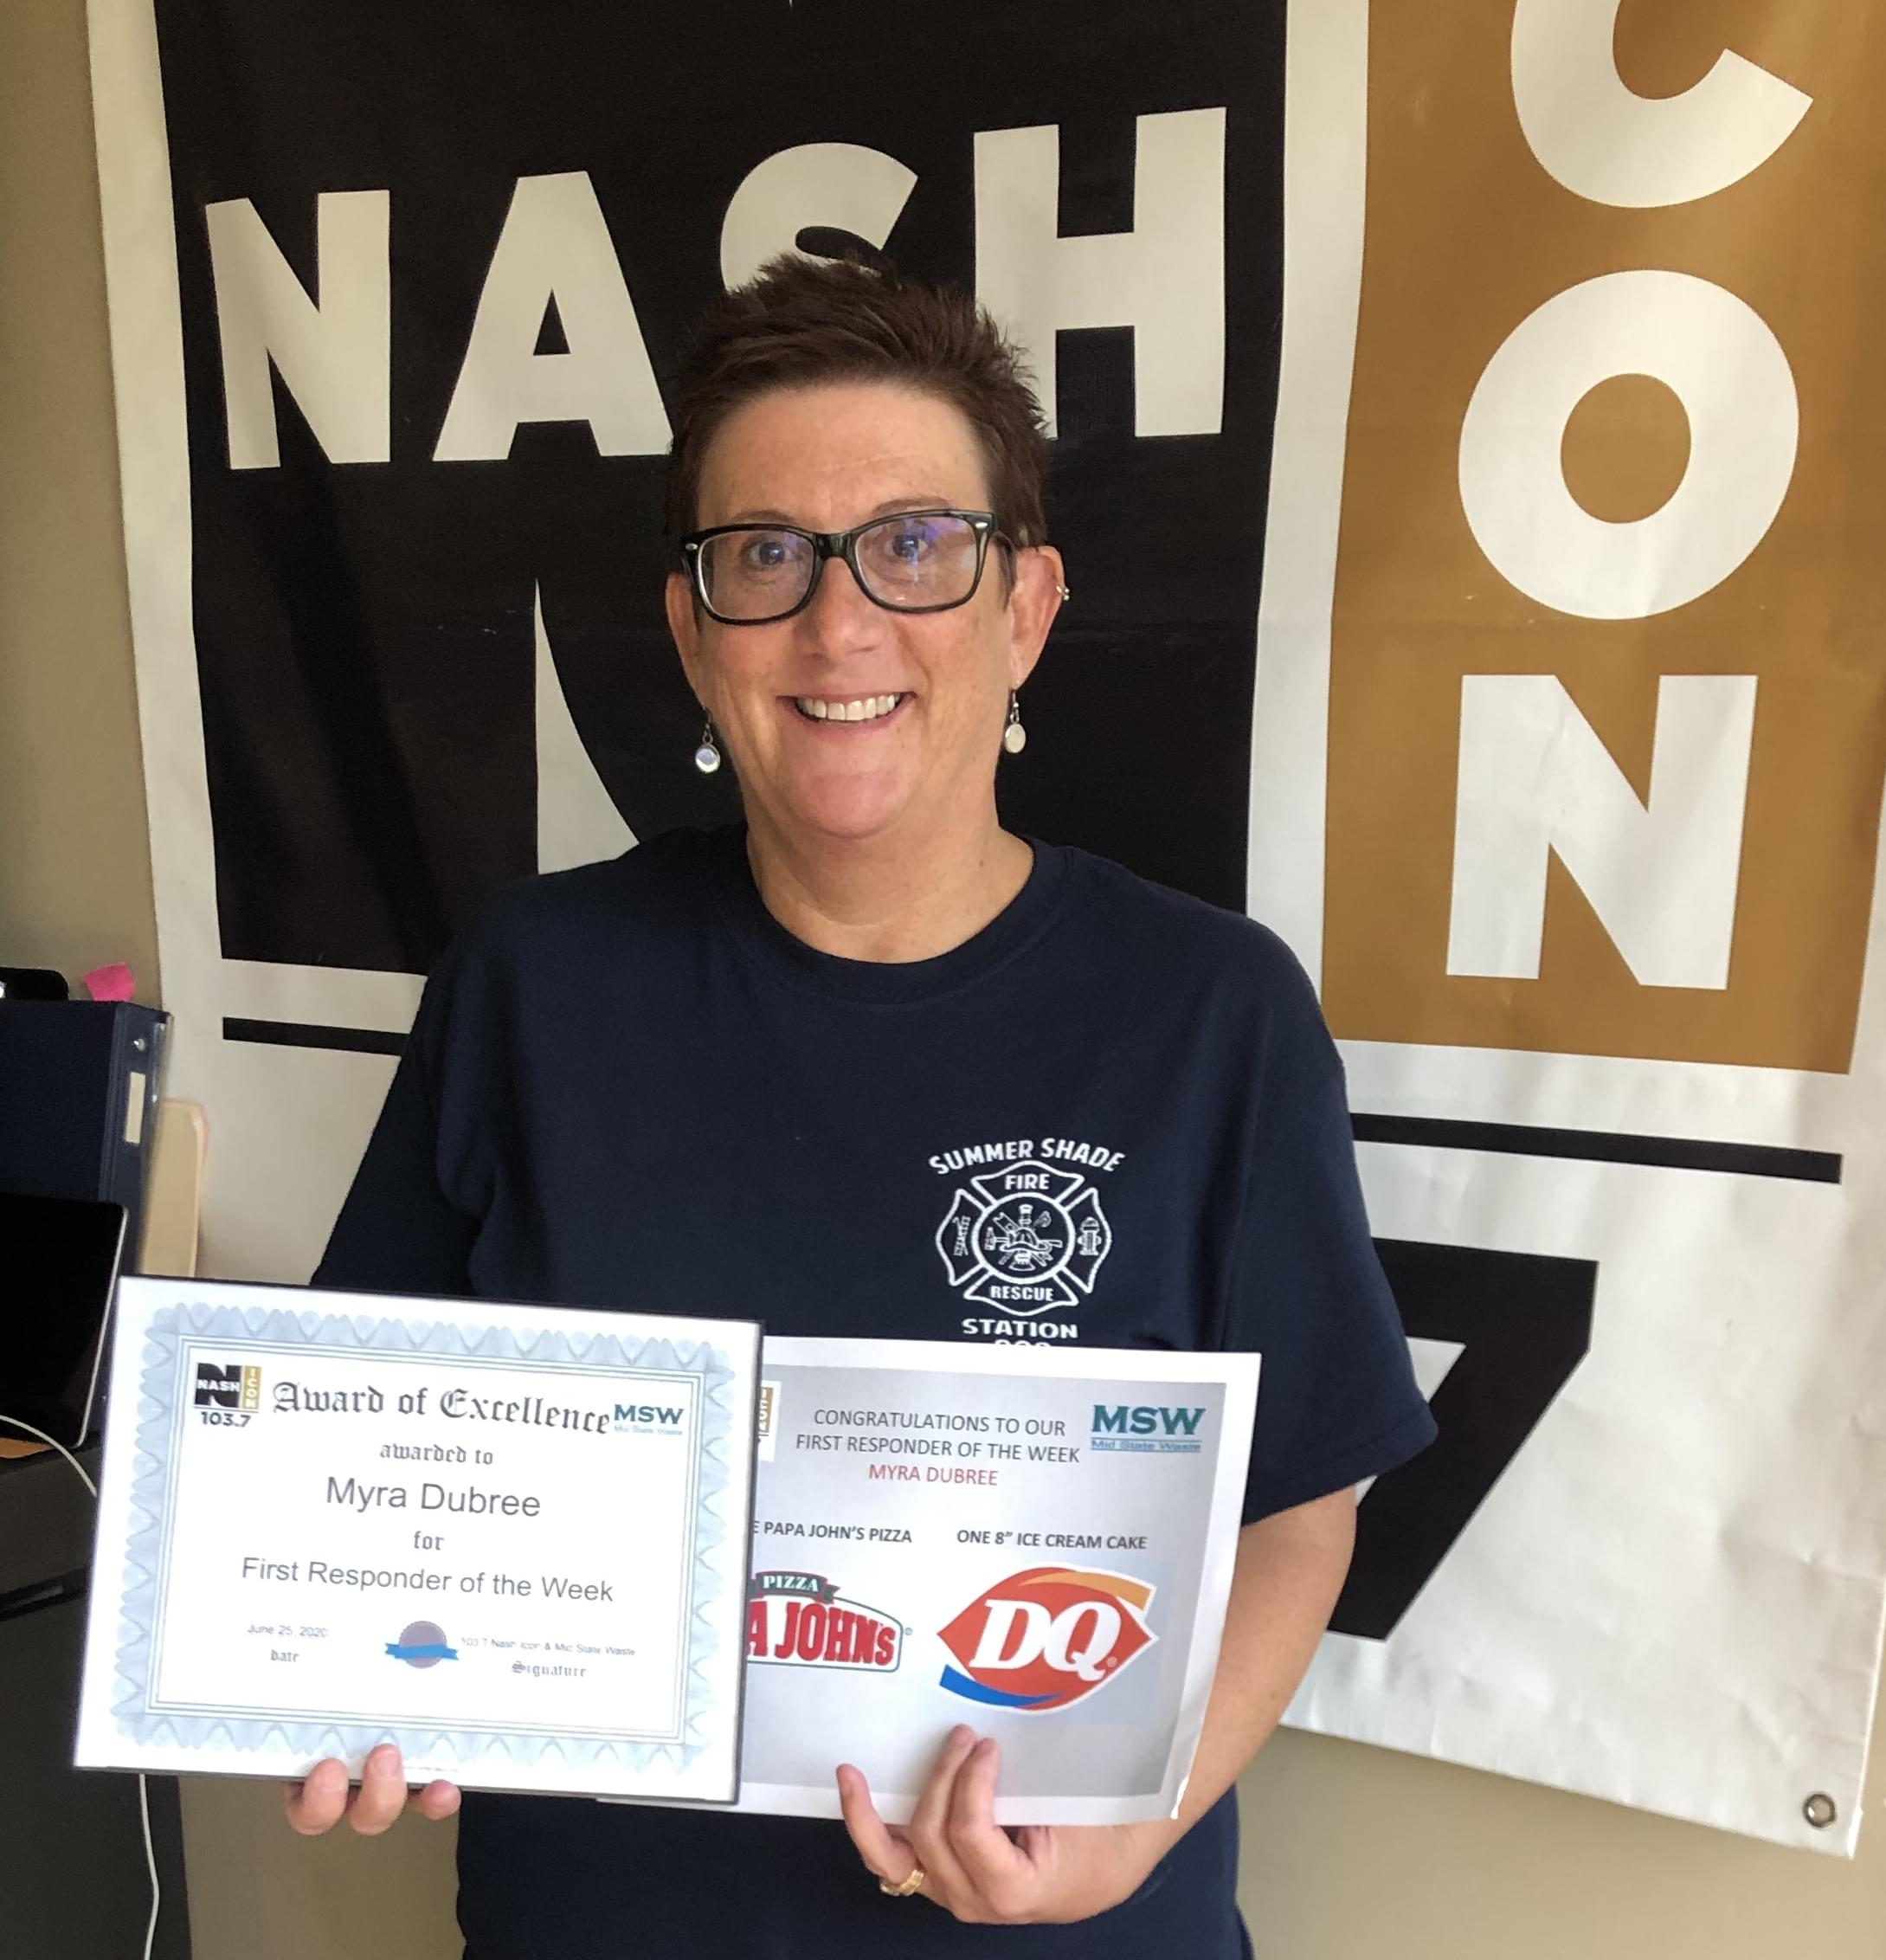 Myra Dubree is our newest First Responder of the Week